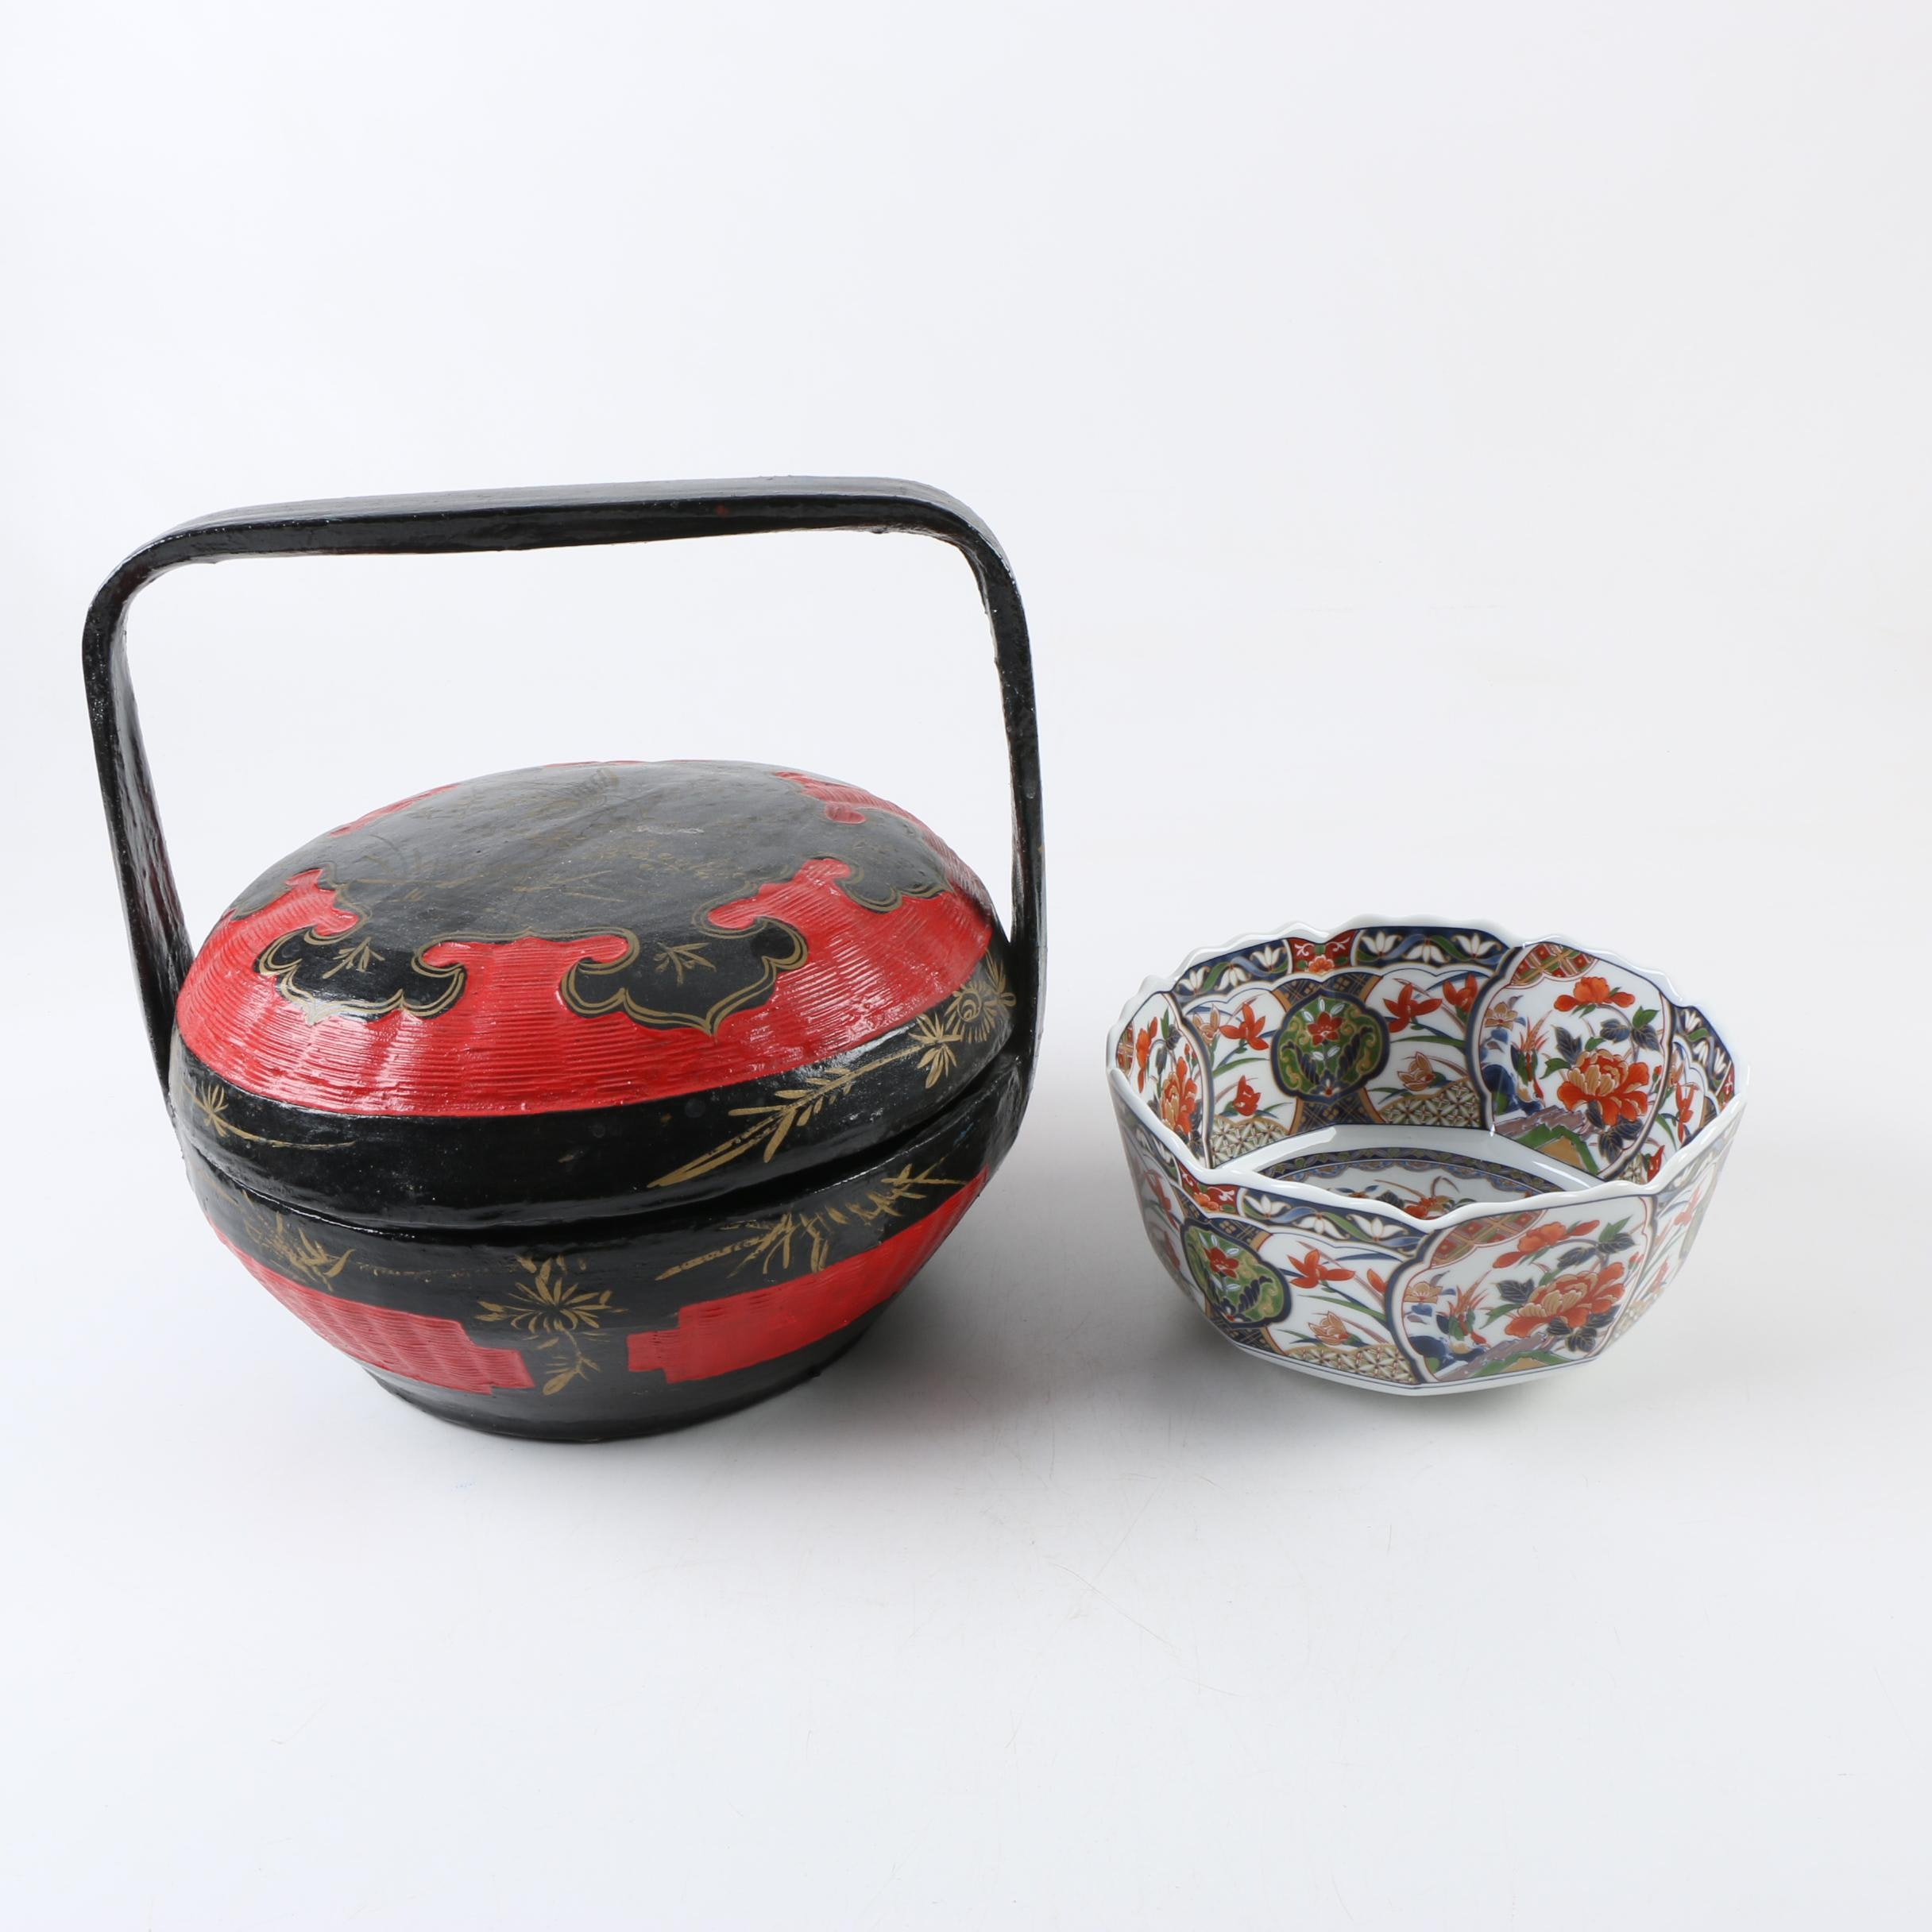 Chinese Wedding Basket and Porcelain Bowl